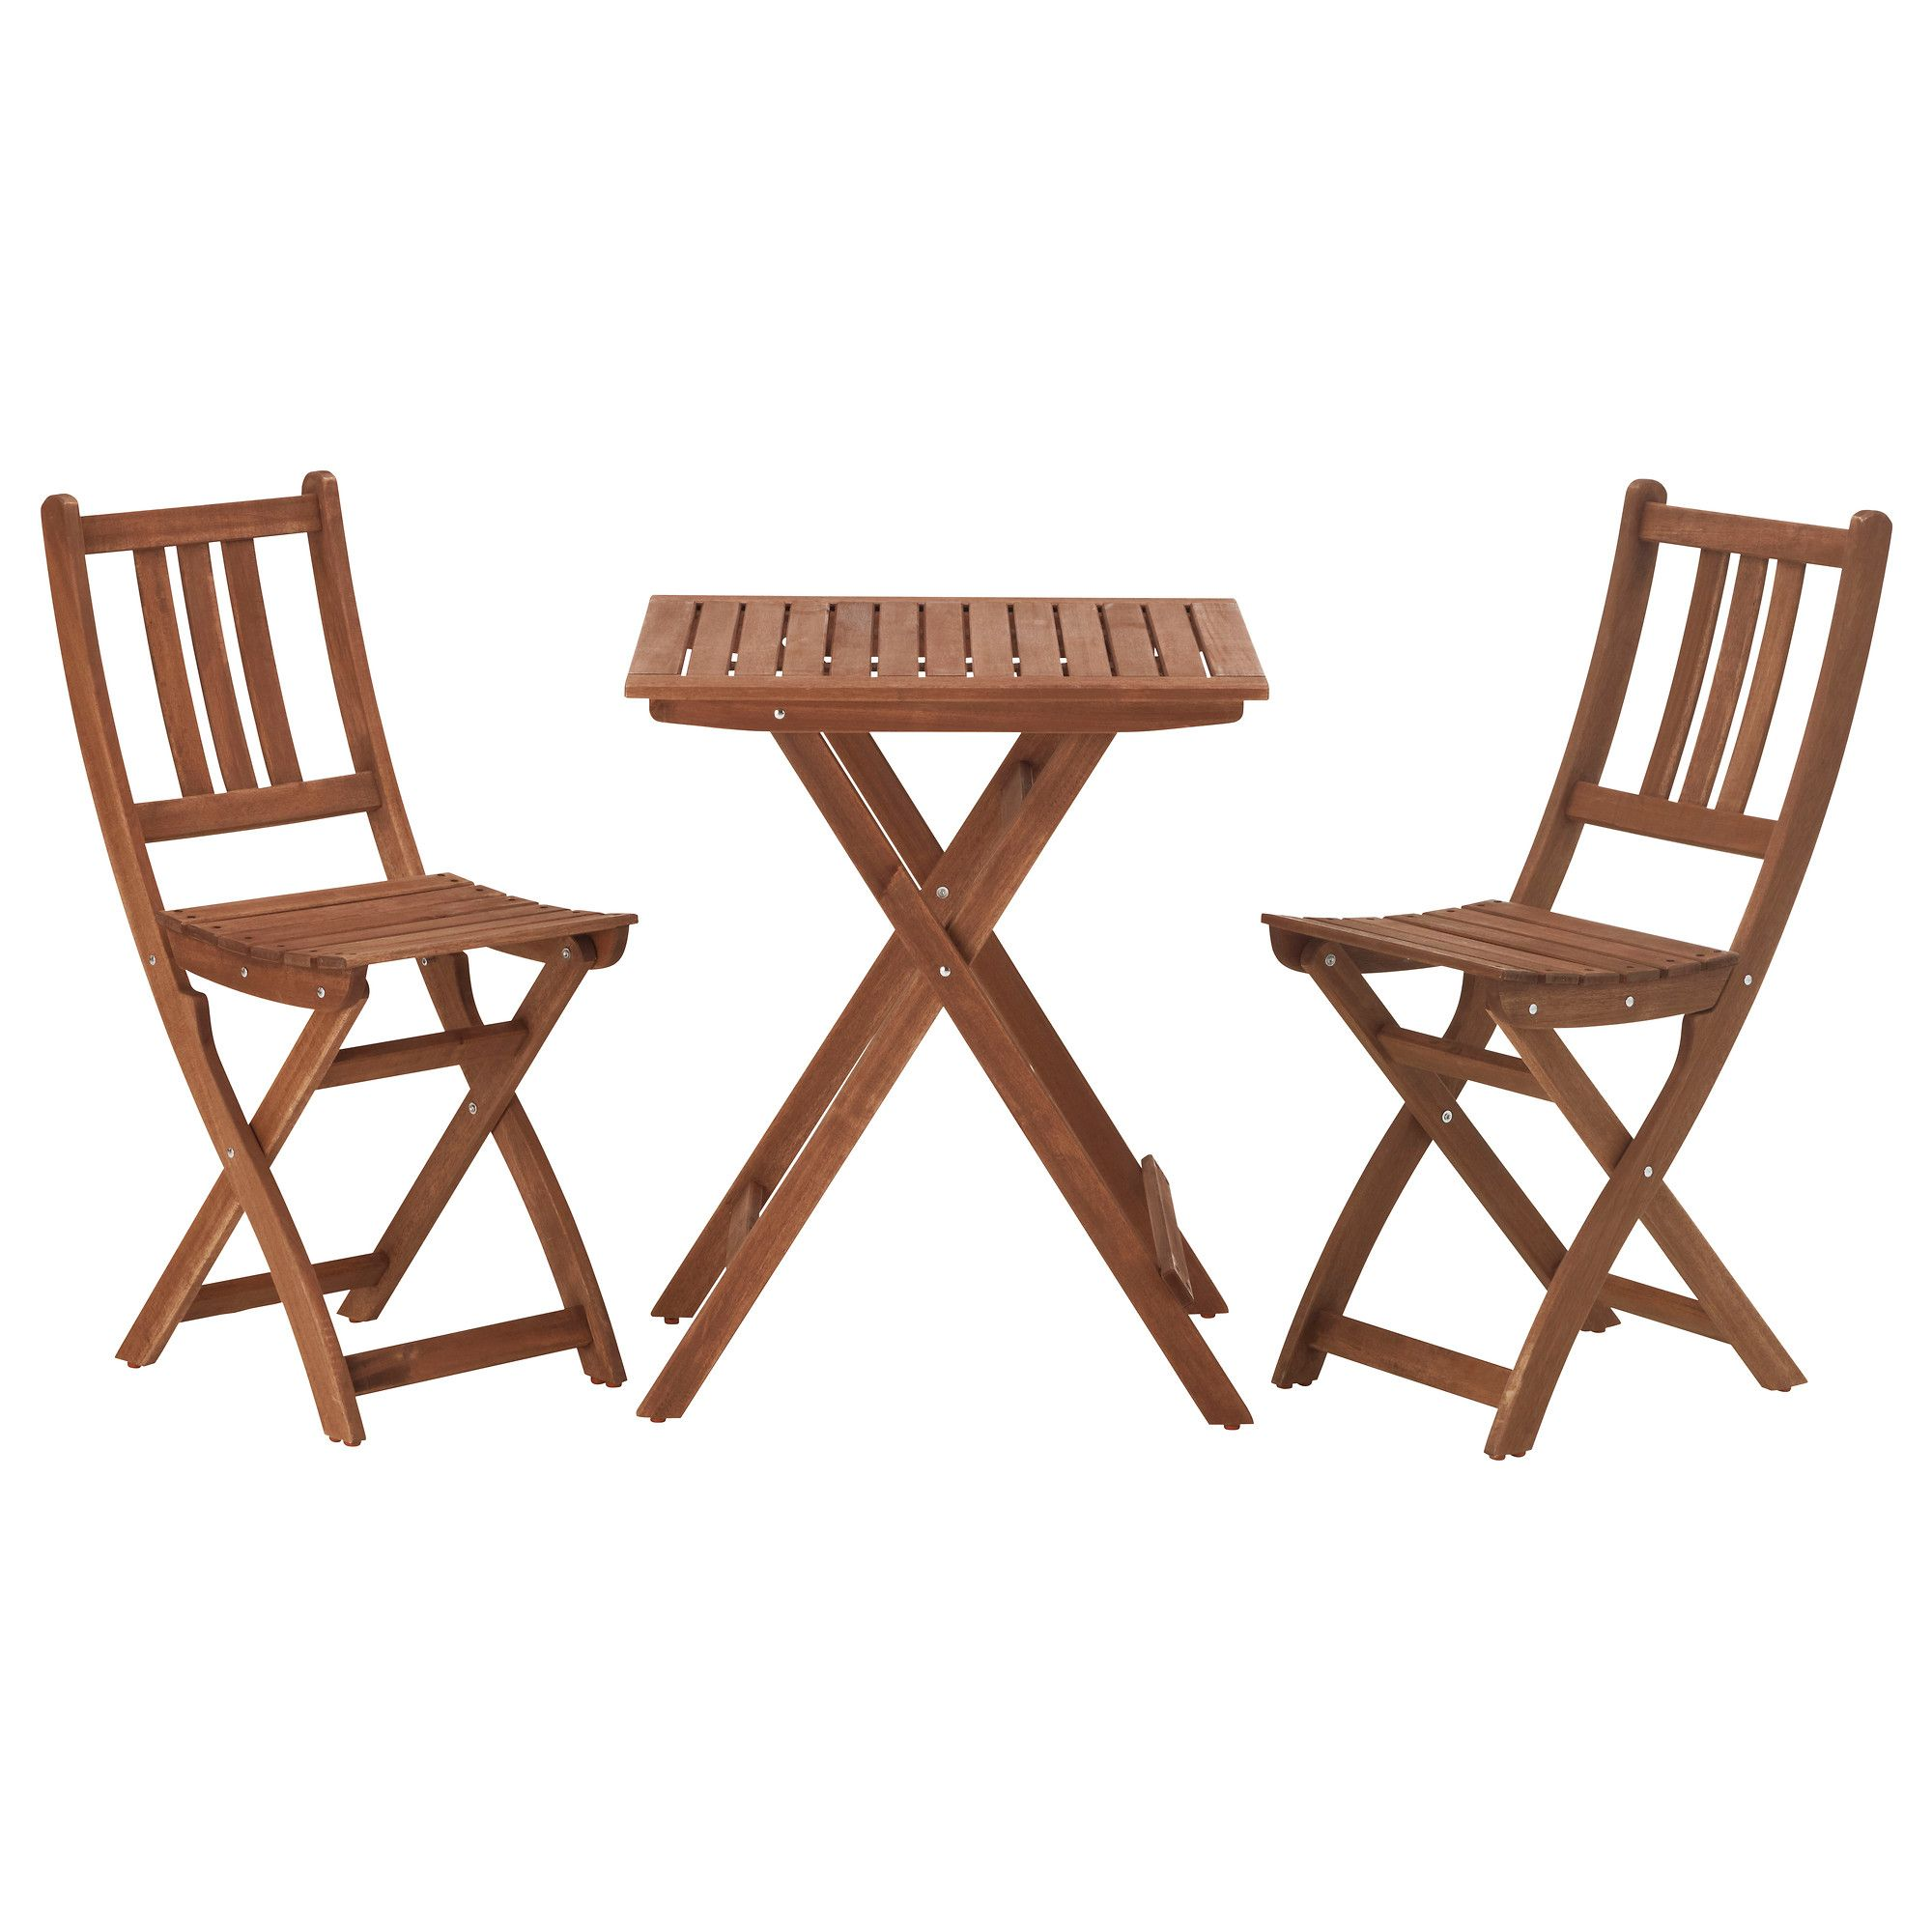 Shop For Furniture Home Accessories More Ikea Outdoor